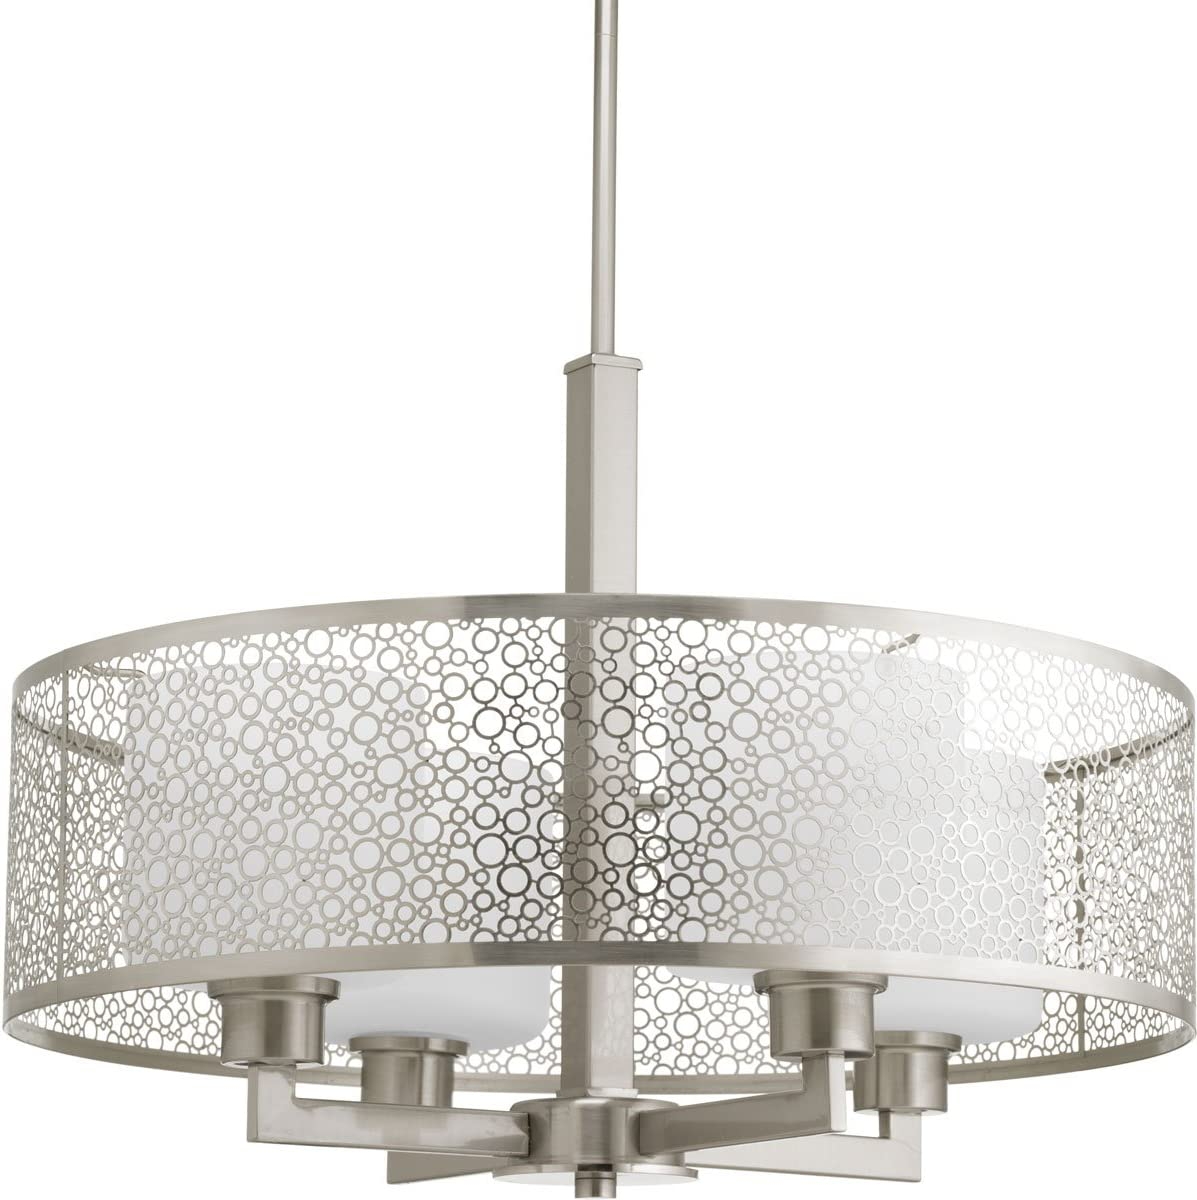 Progress Lighting P5156-09 Contemporary Modern Four Light Pendant from Mingle Collection in Pwt, Nckl, B S, Slvr. Finish, Medium, Brushed Nickel